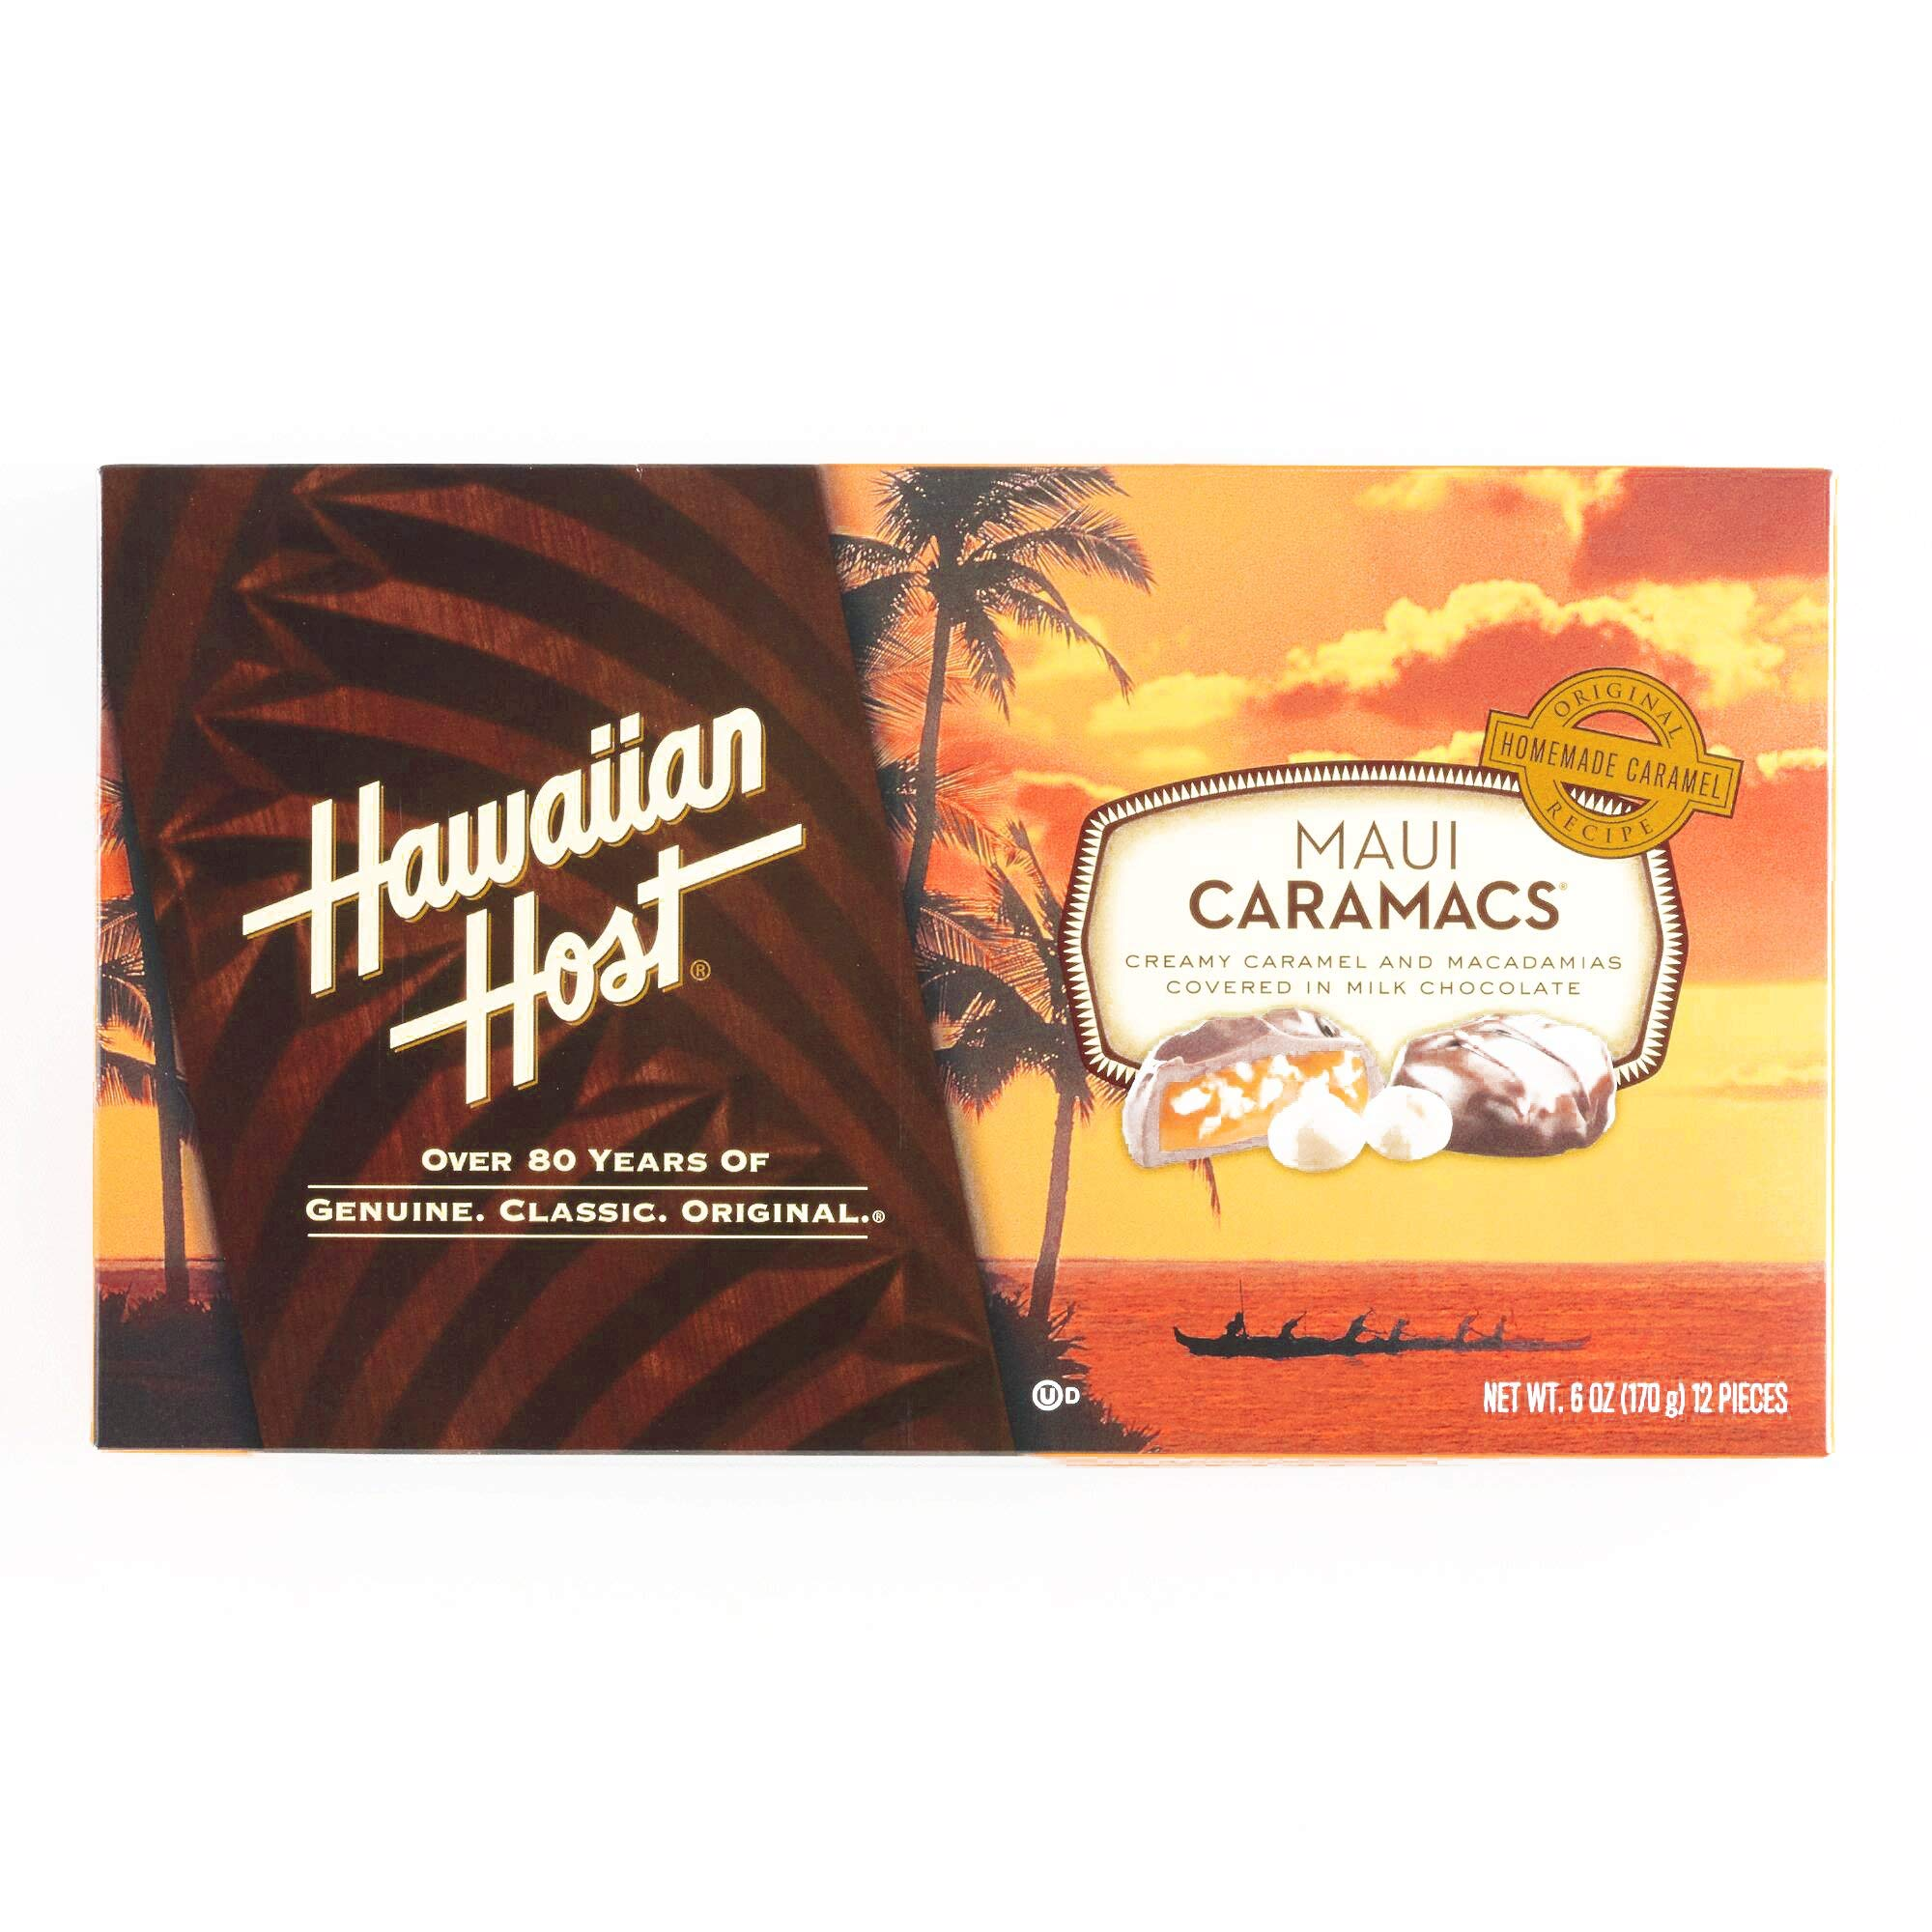 Hawaiian Host Maui Caramacs - 6 ounce box by Hawaiian Host